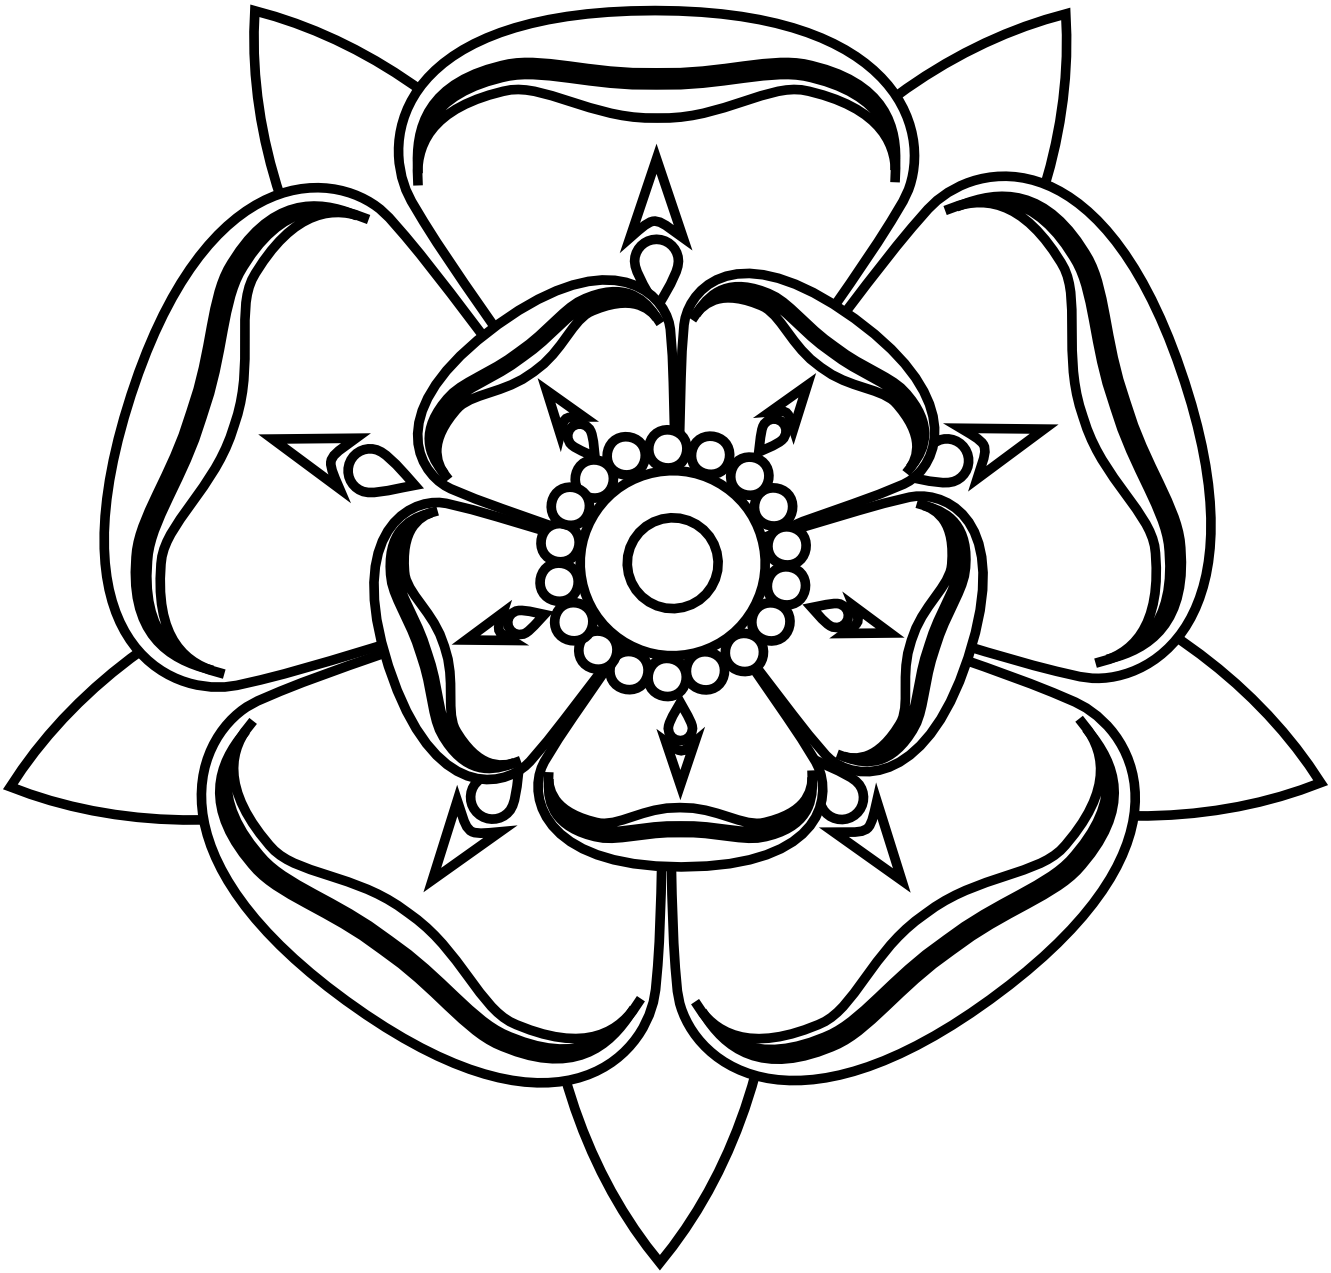 coloring picture rose white rose coloring download white rose coloring for free coloring rose picture